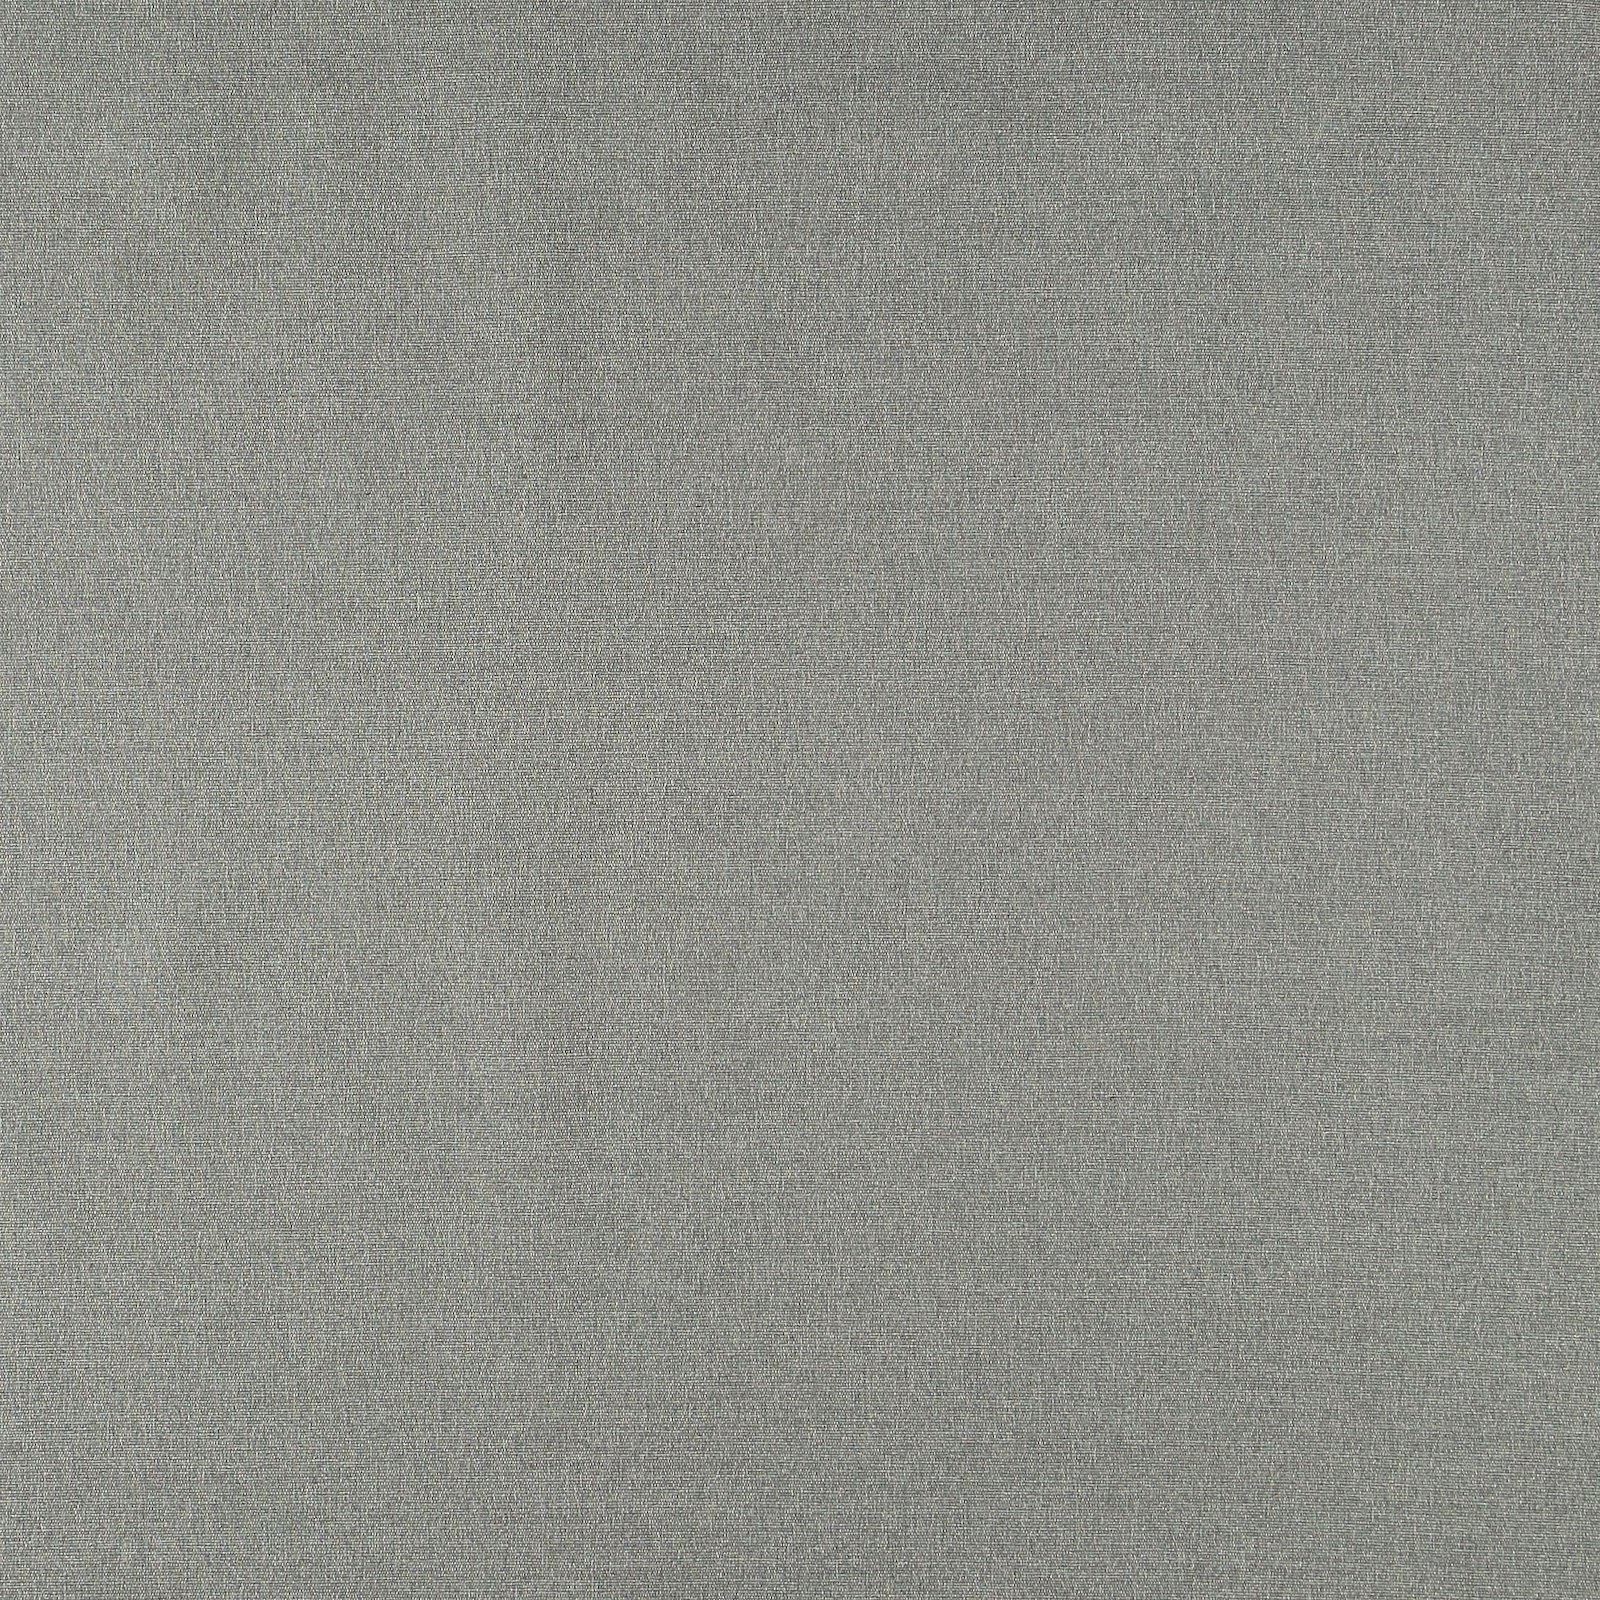 Upholstery fabric grey w/black backing 824107_pack_solid